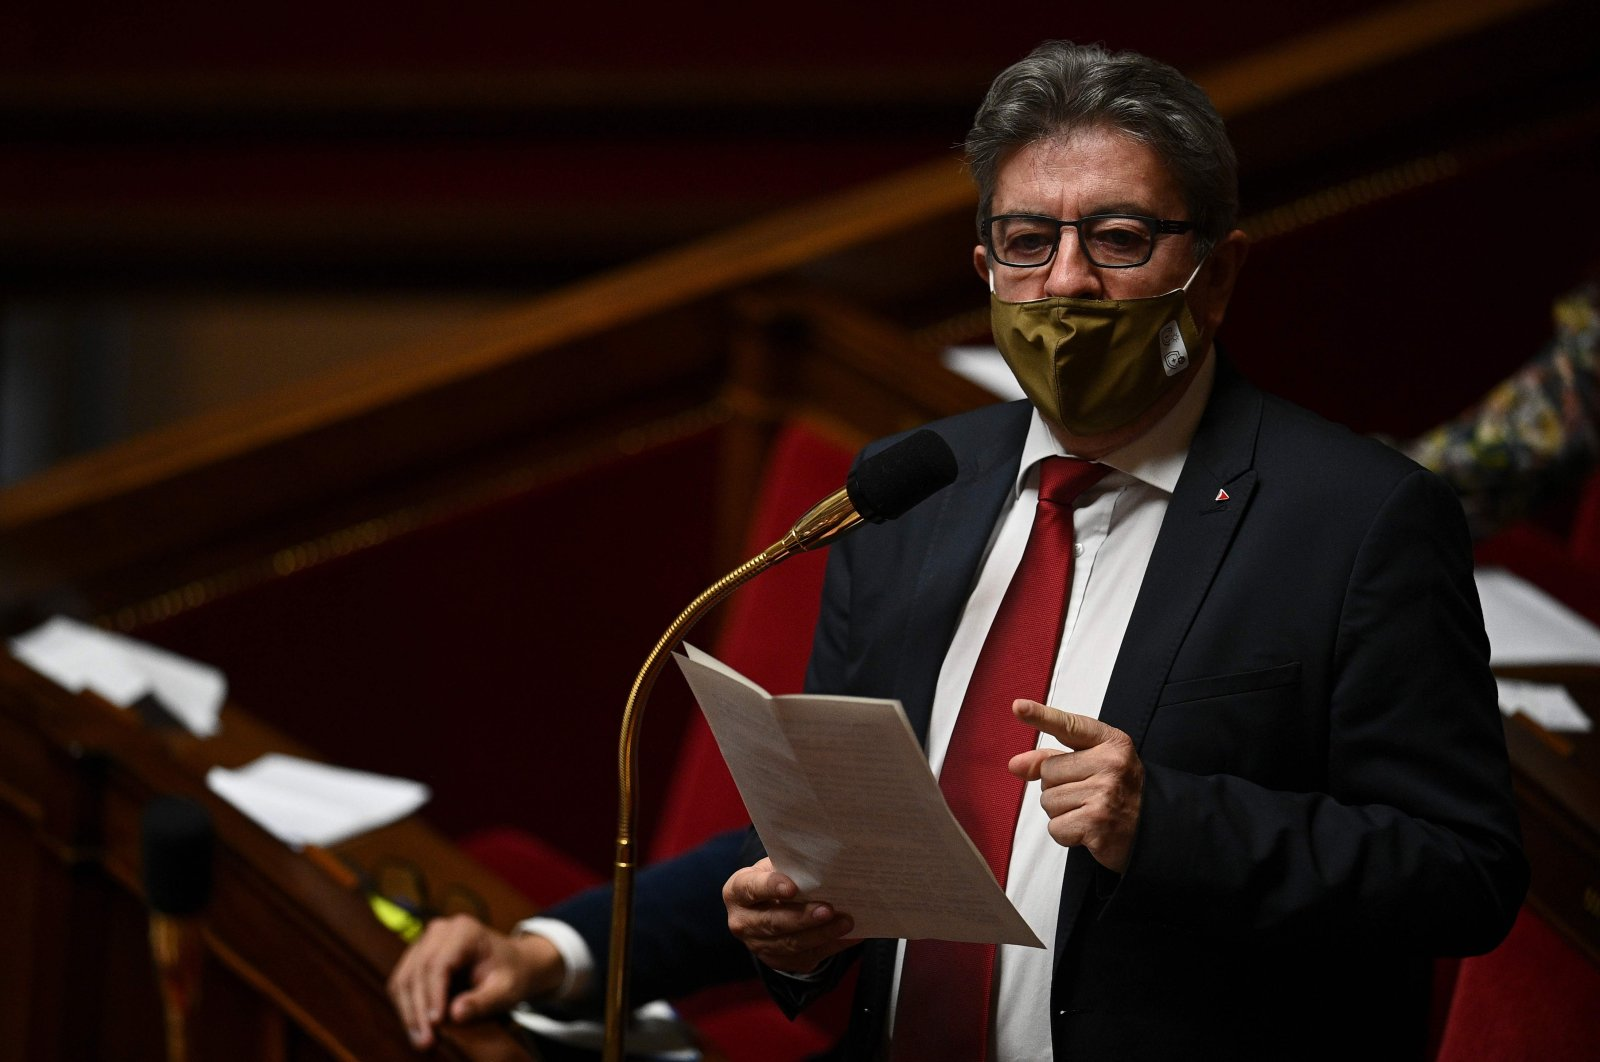 French leftist party La France Insoumise's (LFI) leader Jean-Luc Melenchon gestures as he speaks during a session at the National Assembly in Paris on Oct. 20, 2020. (AFP Photo)